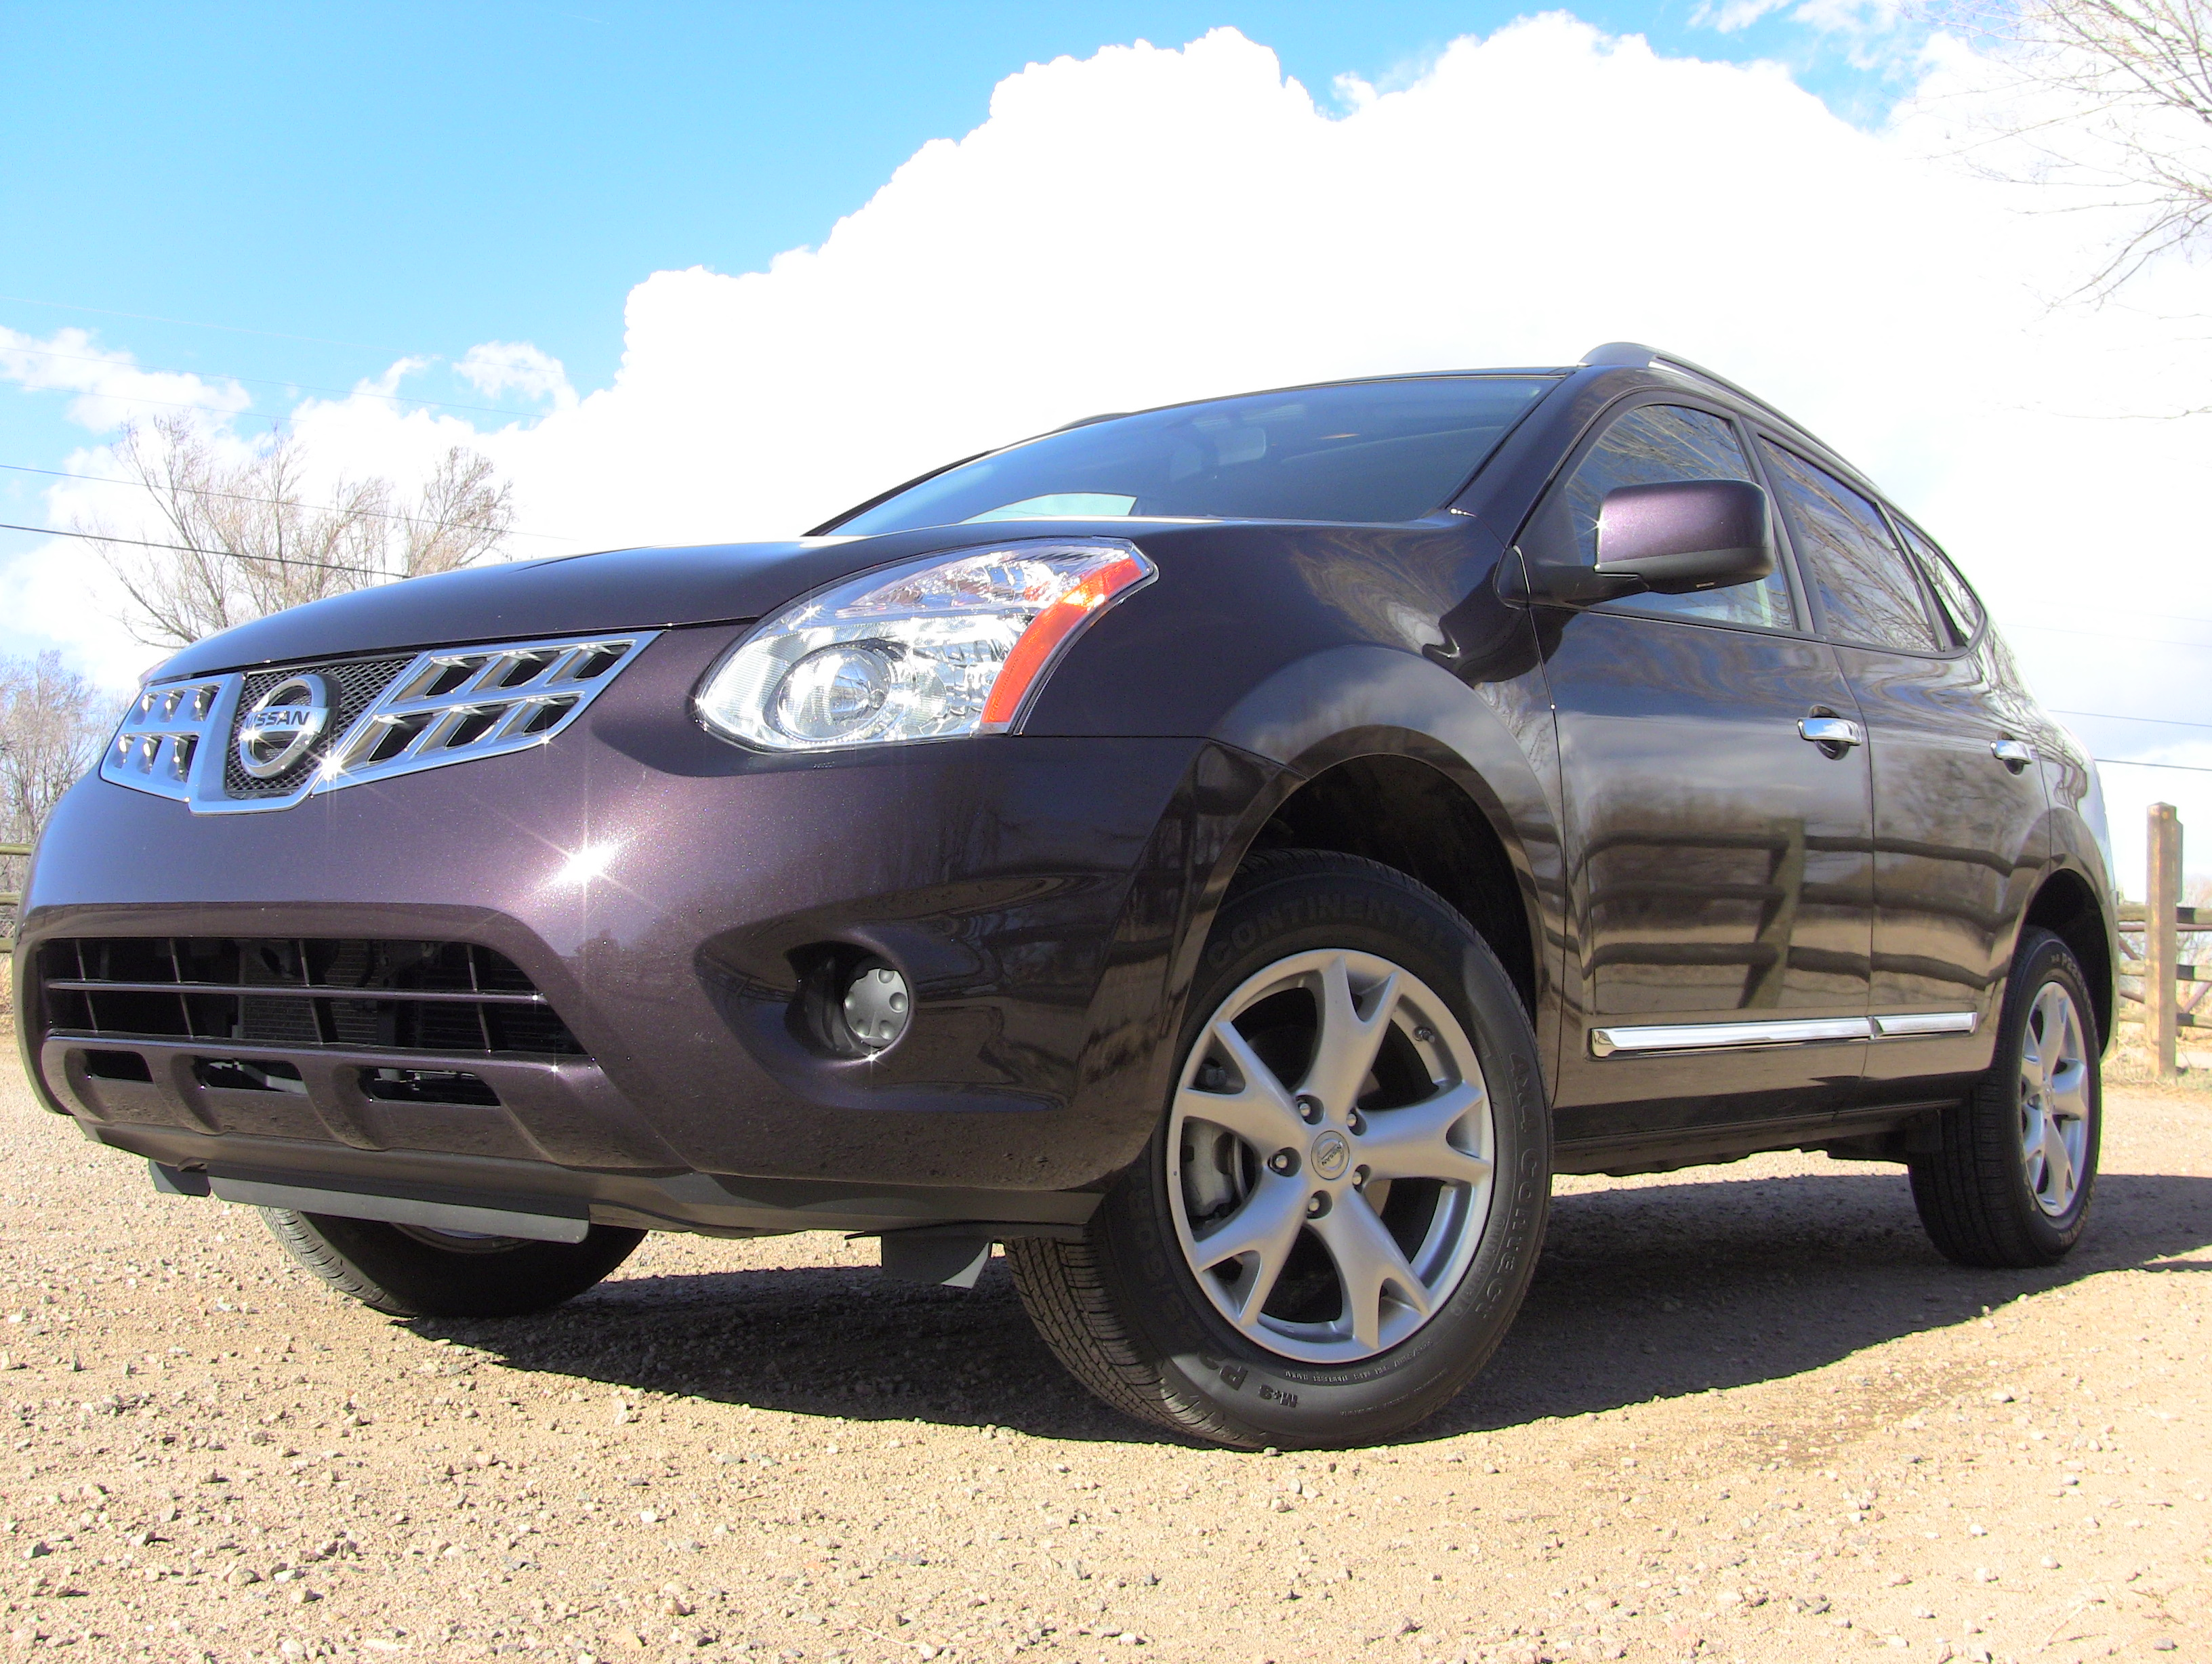 Hereu0027s What You Should Know About The 2011 Nissan Rogue Even Before You  Watch The Rogue Review. The Small Crossover Is A Rogue In Name Only.